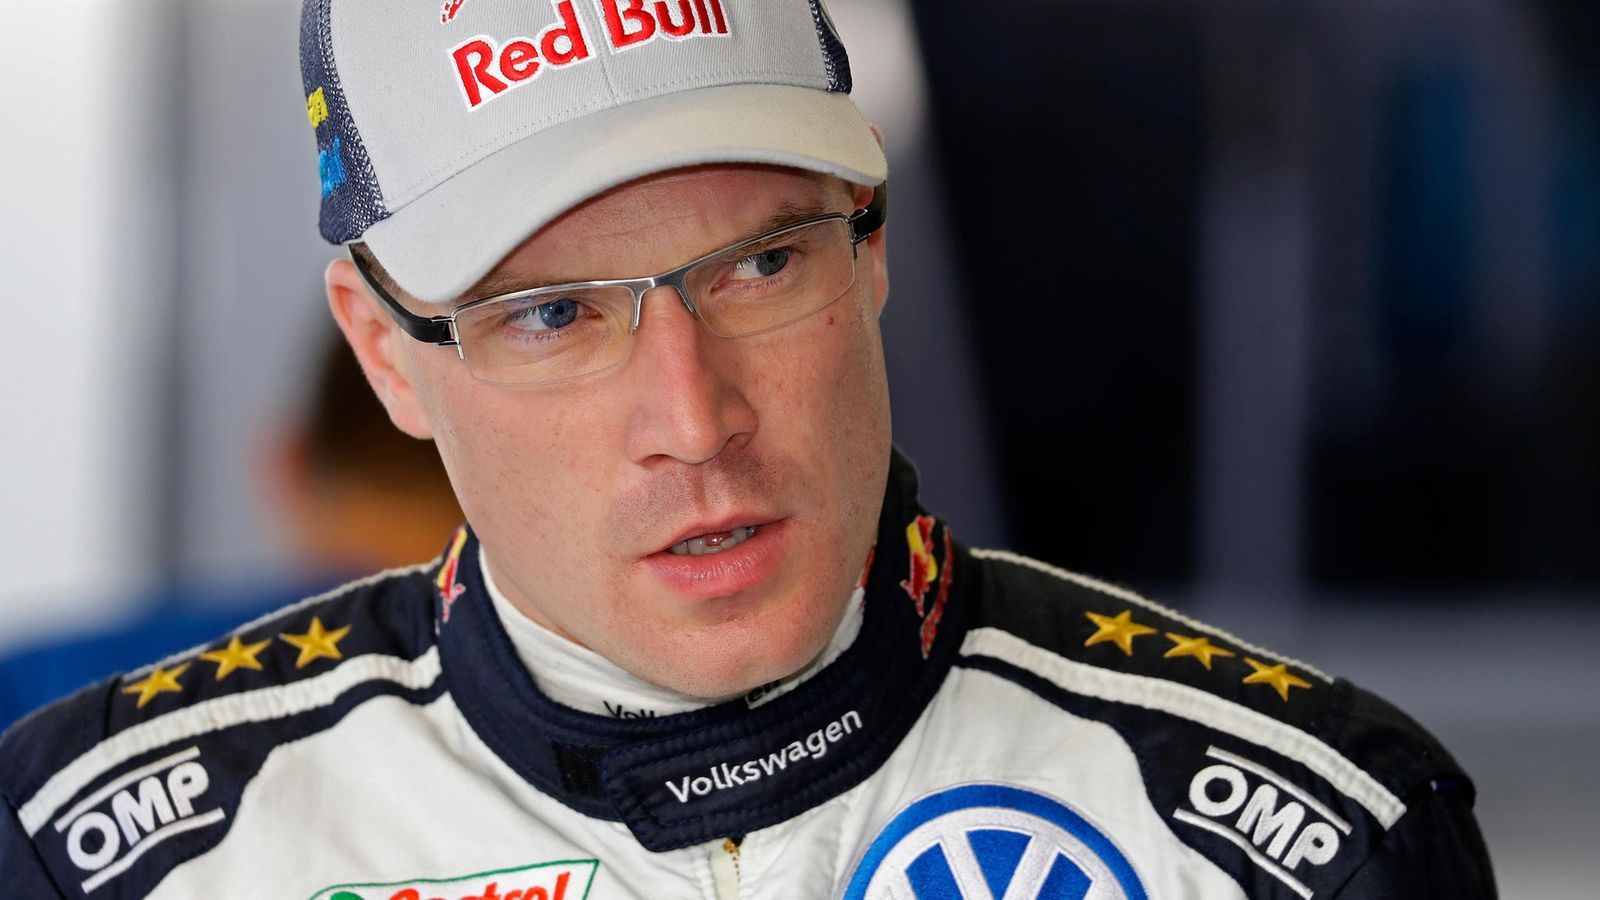 Jari-Matti Latvala with a weight of 81 kg and a feet size of N/A in favorite outfit & clothing style